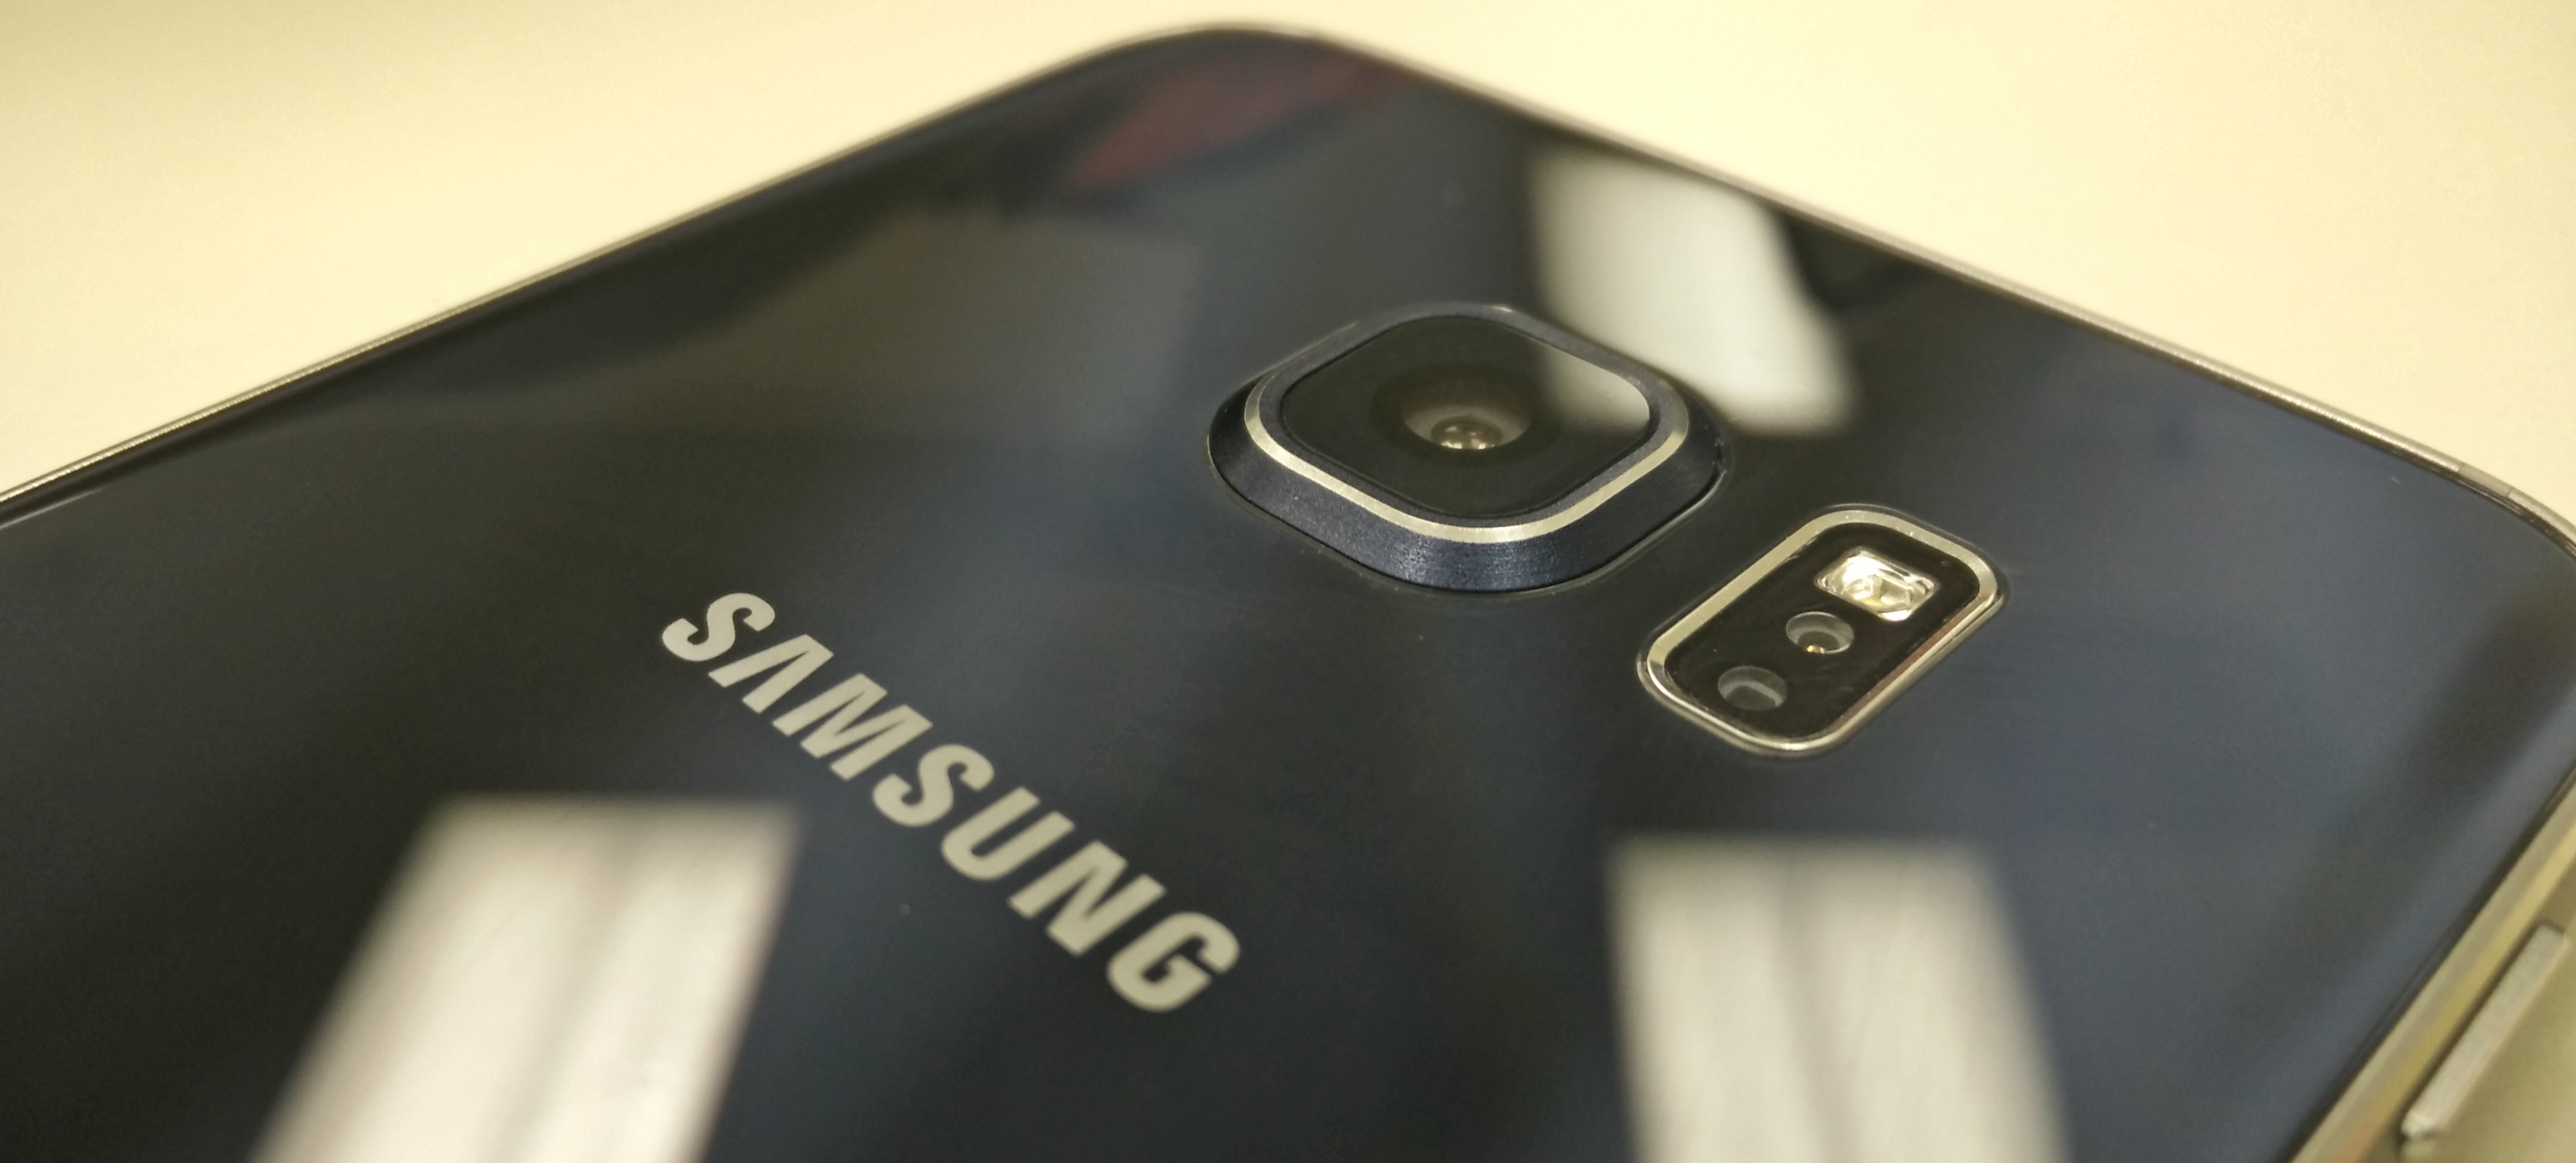 7 problems with the Samsung Galaxy S6 and how to fix them